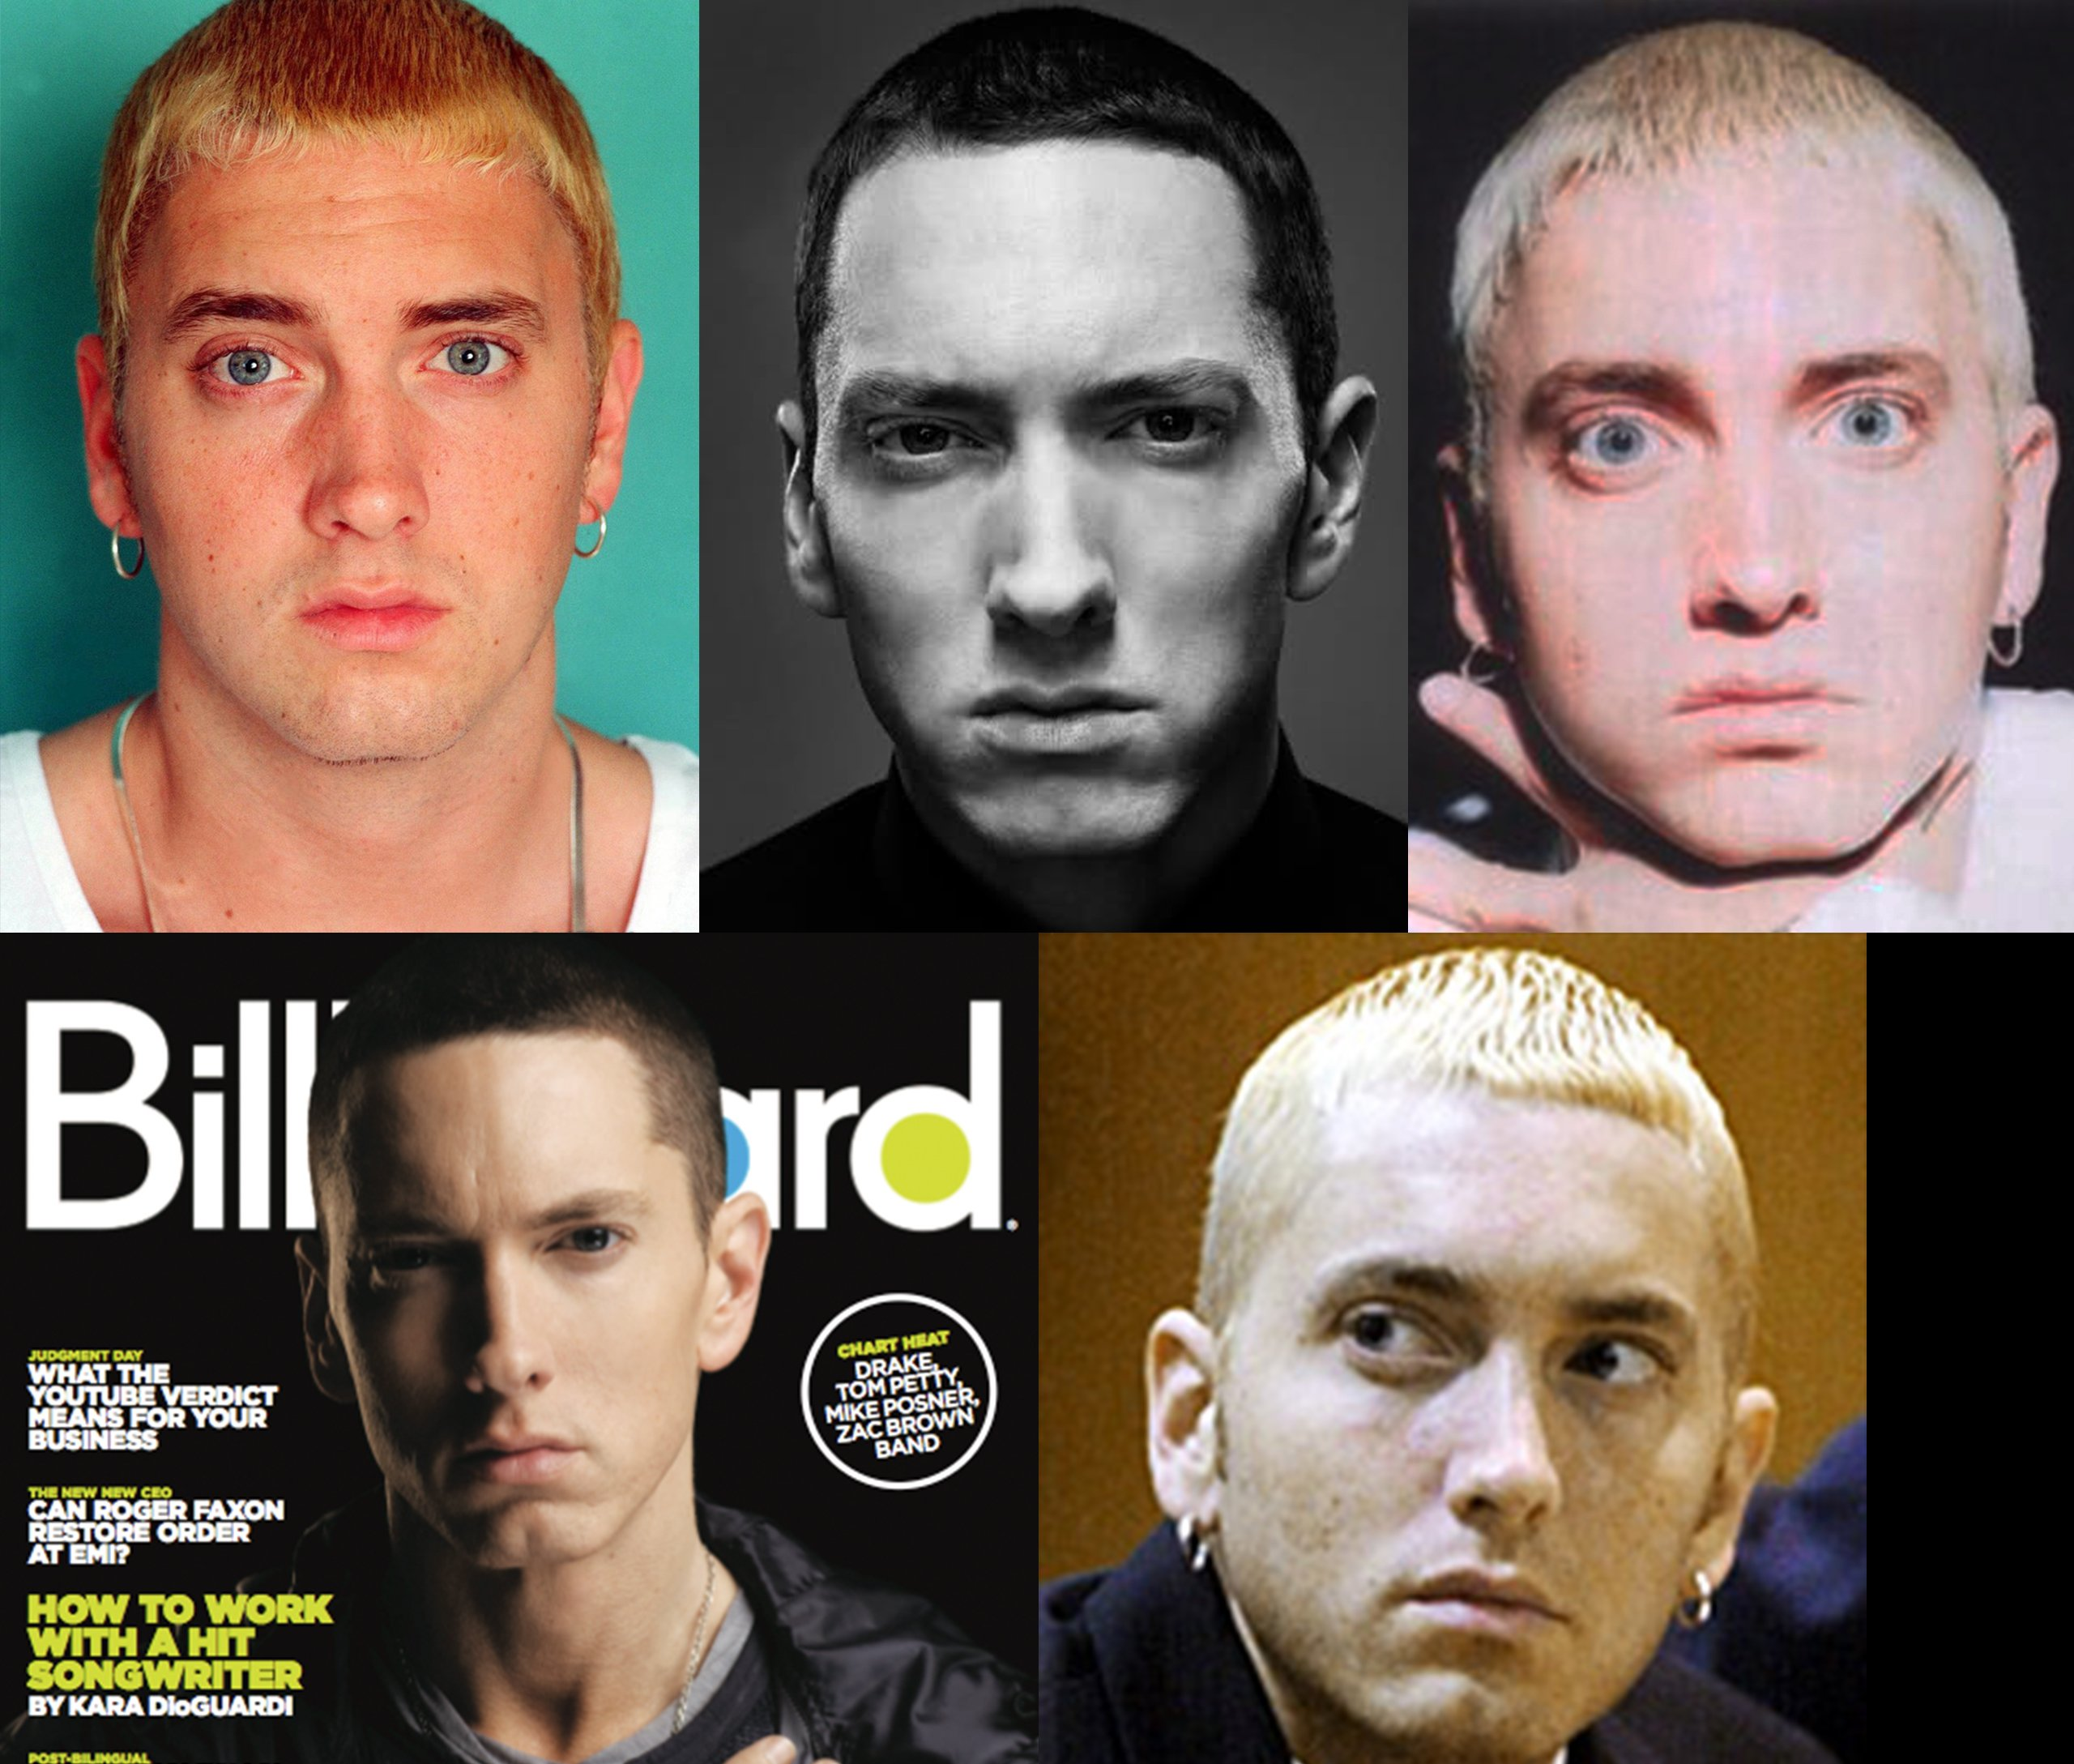 Eminem DIED, Was CLONED and REPLACED : THE HORROR MOVIES BLOG